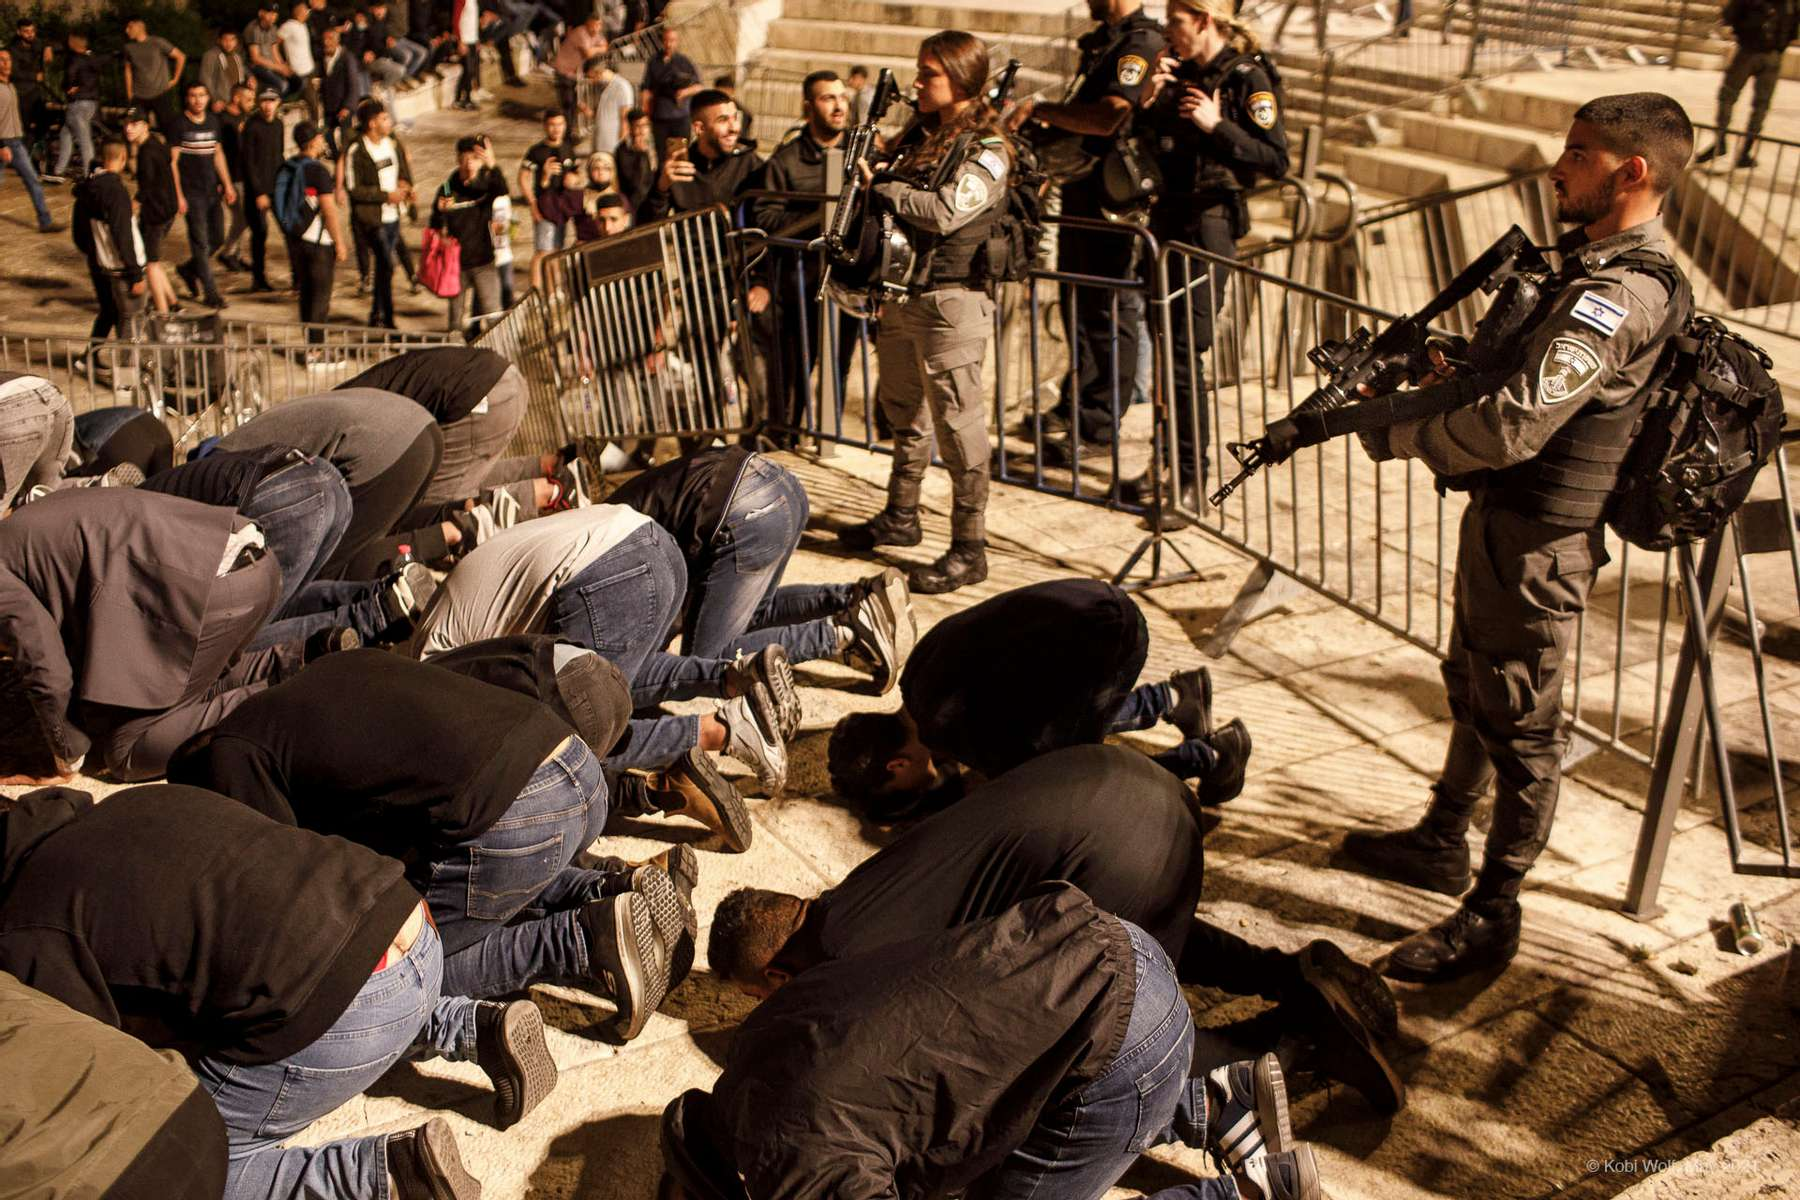 A protest of Palestinians outside Damascus Gate in the  Old City of Jerusalem on April 24, 2021 Photographer: Kobi Wolf